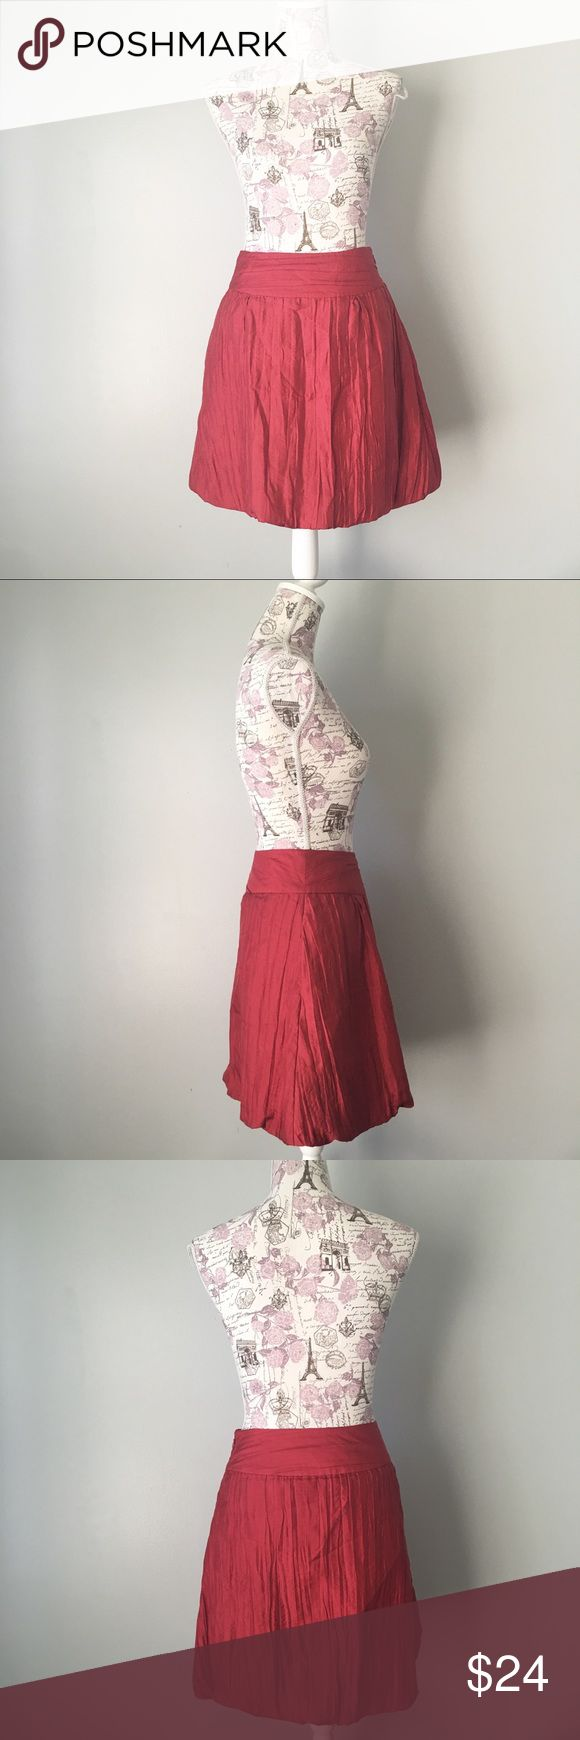 Banana Republic Red Silk Skirt Banana Republic red silk bubble skirt. Zips up side. Has pockets! Size 2 Banana Republic Skirts A-Line or Full